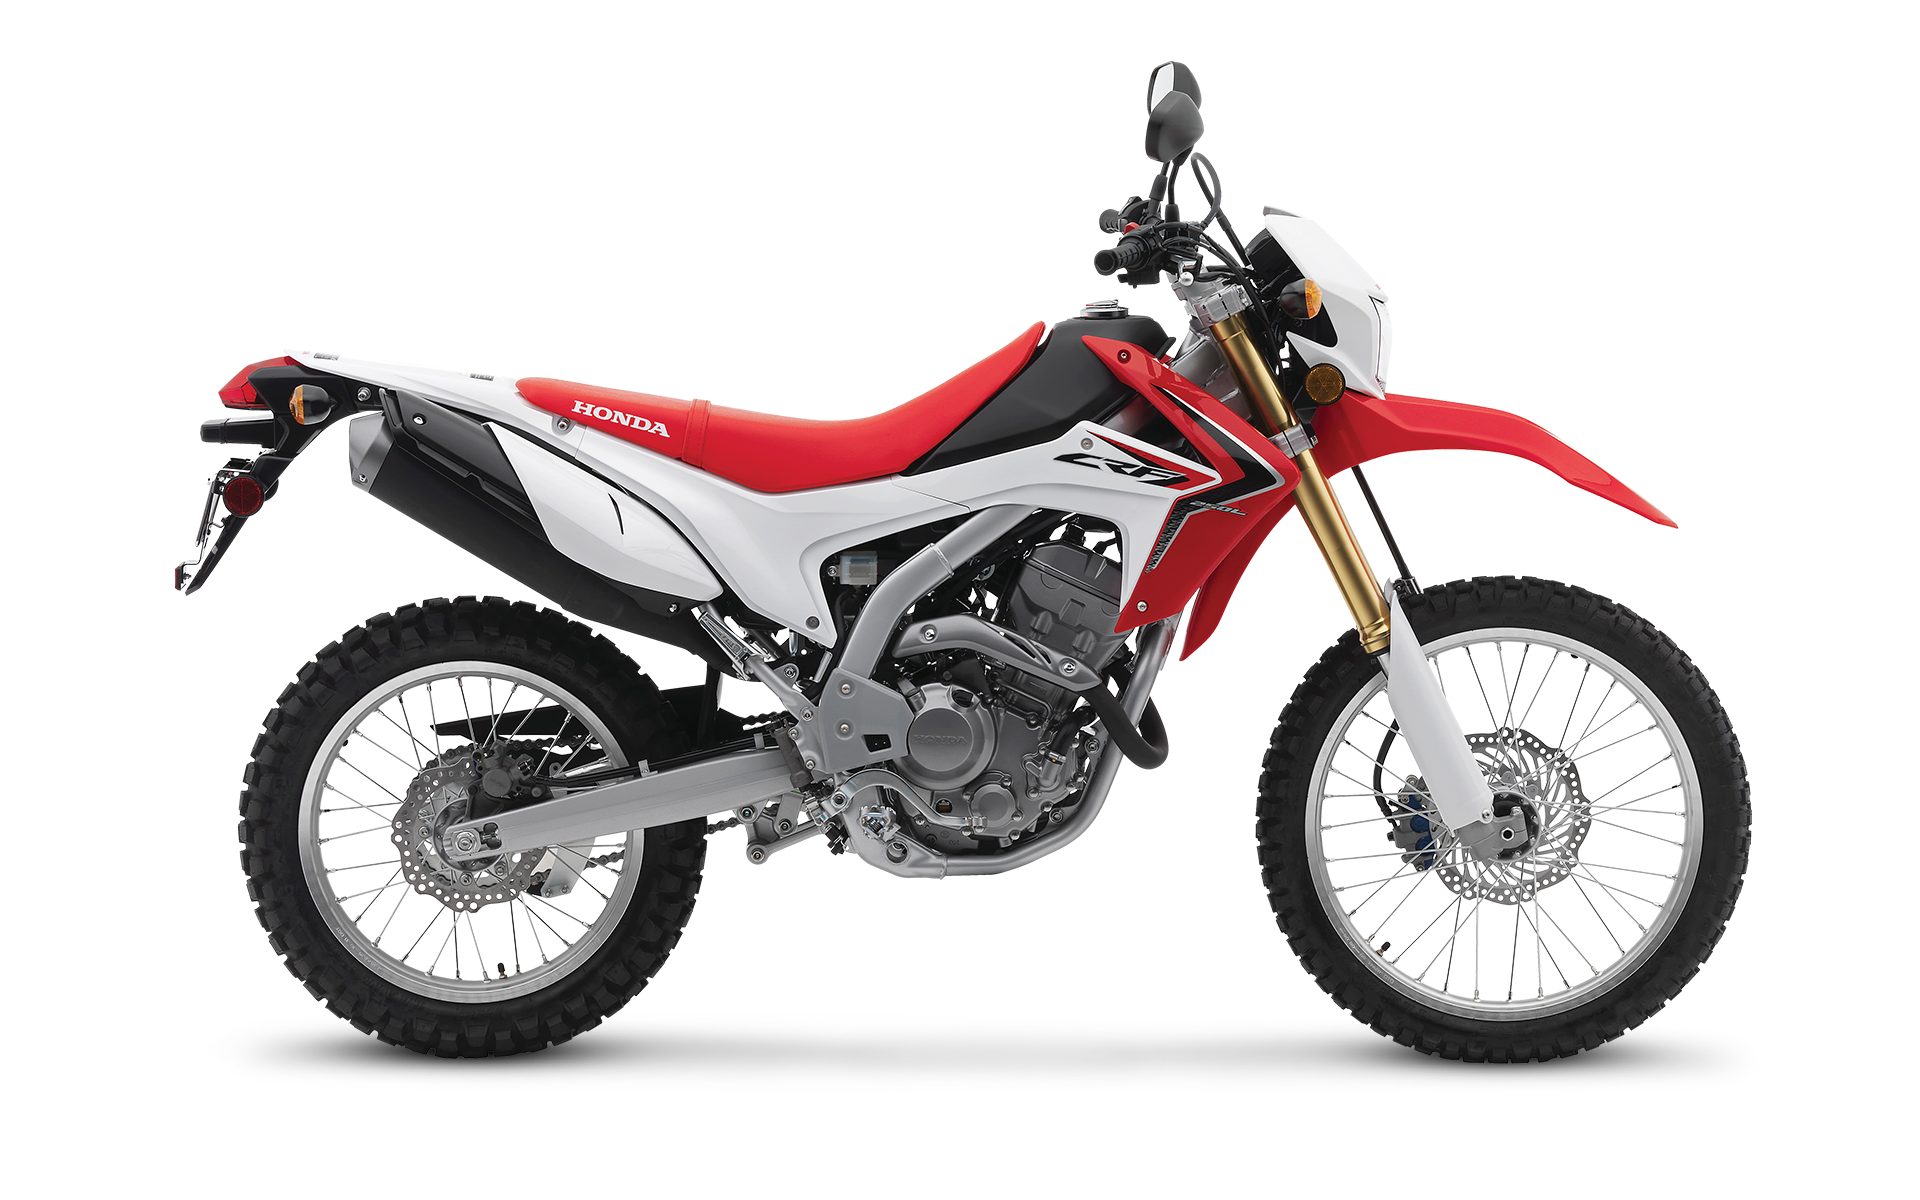 CRF250L > The Dirtbike for Thrill Seekers